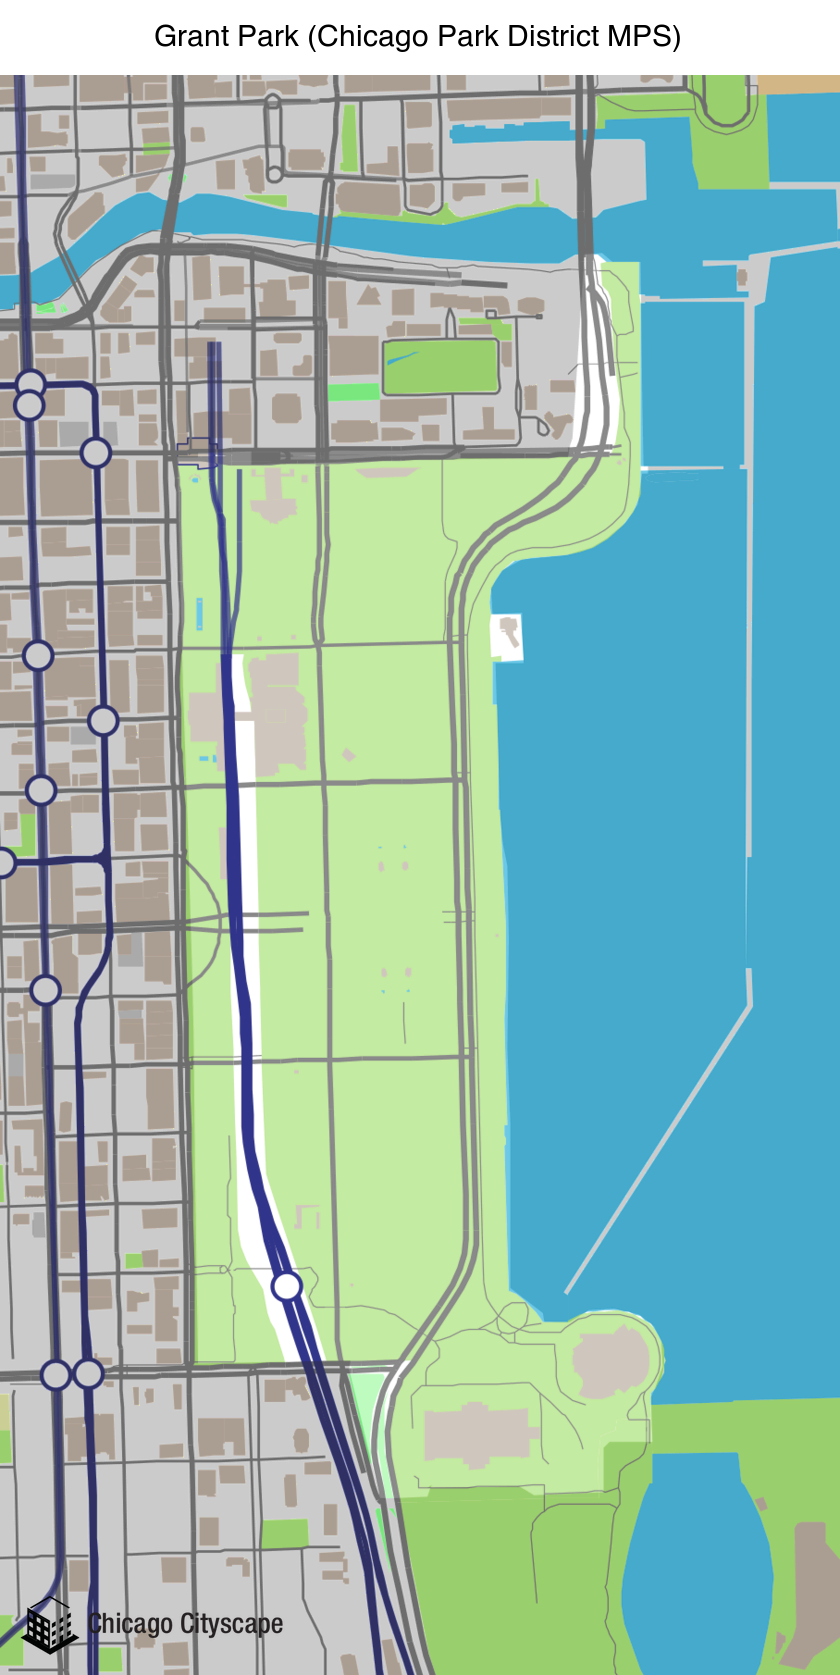 Grant Park Map Chicago Cityscape   Map of building projects, properties, and